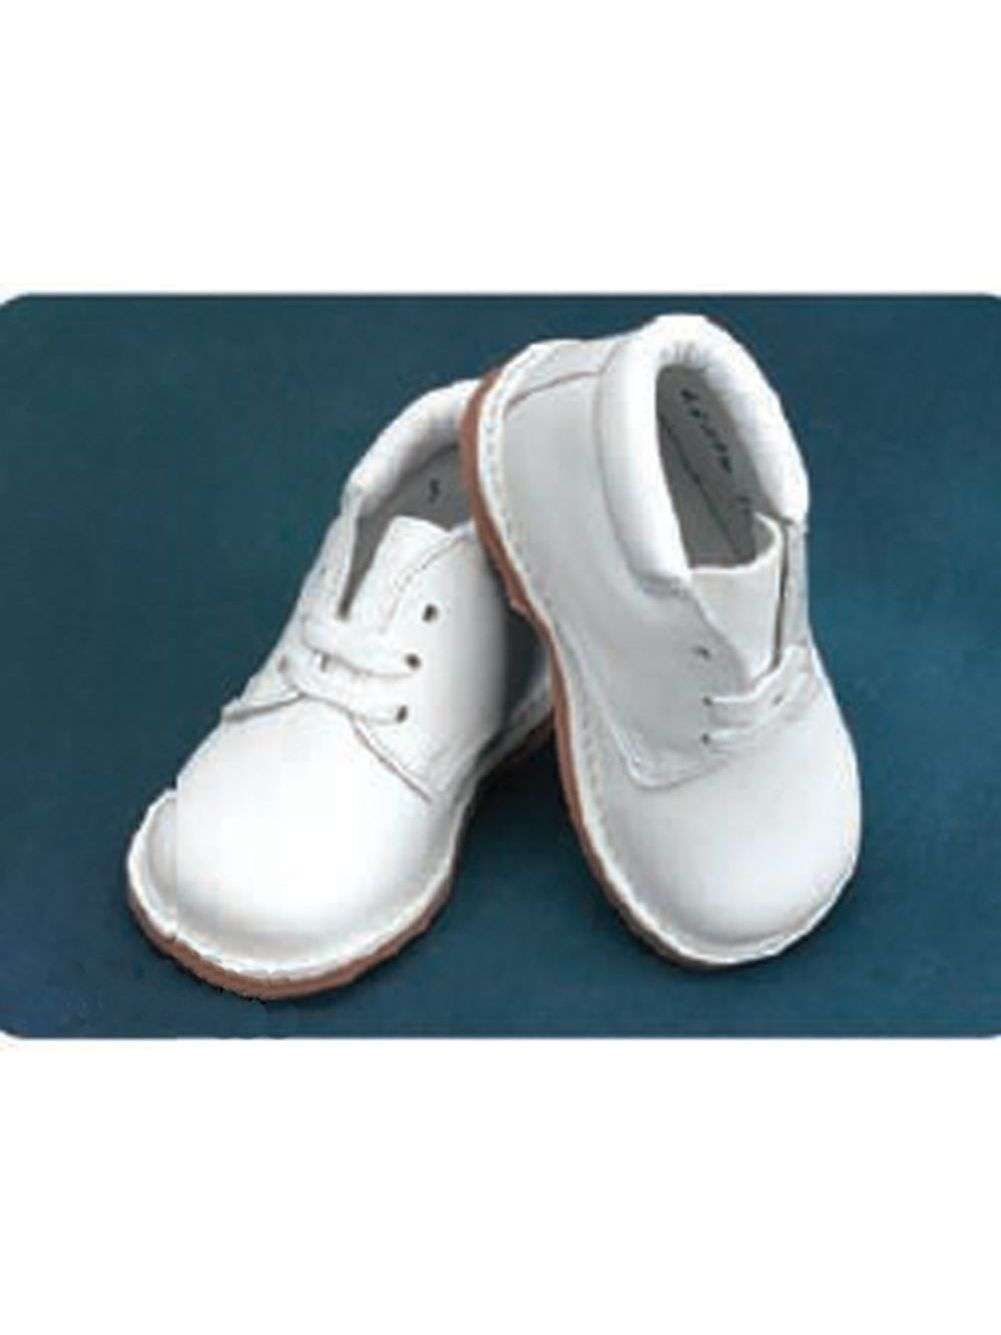 professional sale nice cheap get online Angels Garment White Lace Ankle Easter Baby Toddler Boy Girl Shoe 3-9.5